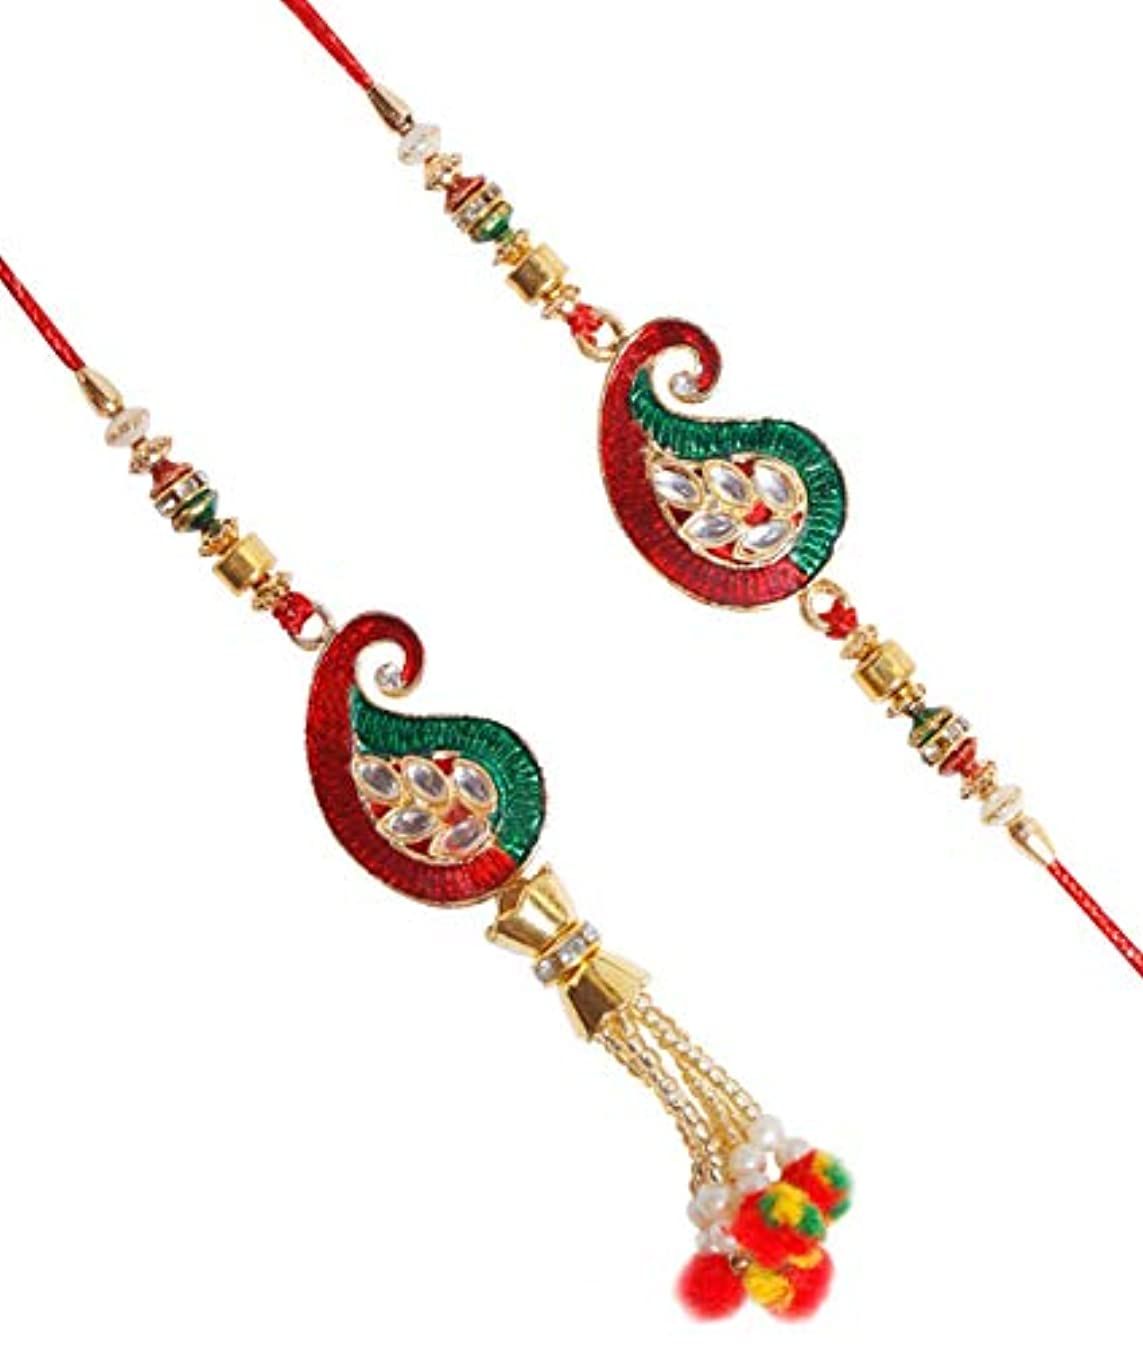 Paisley Design American Diamond Lumba Rakhi Bhaiya Bhabhi Rakhi for Brother Bhai Bhaiya with Crystal Beads Raksha Bandhan Traditional Rakhee for Kids Indian Hindu Festival